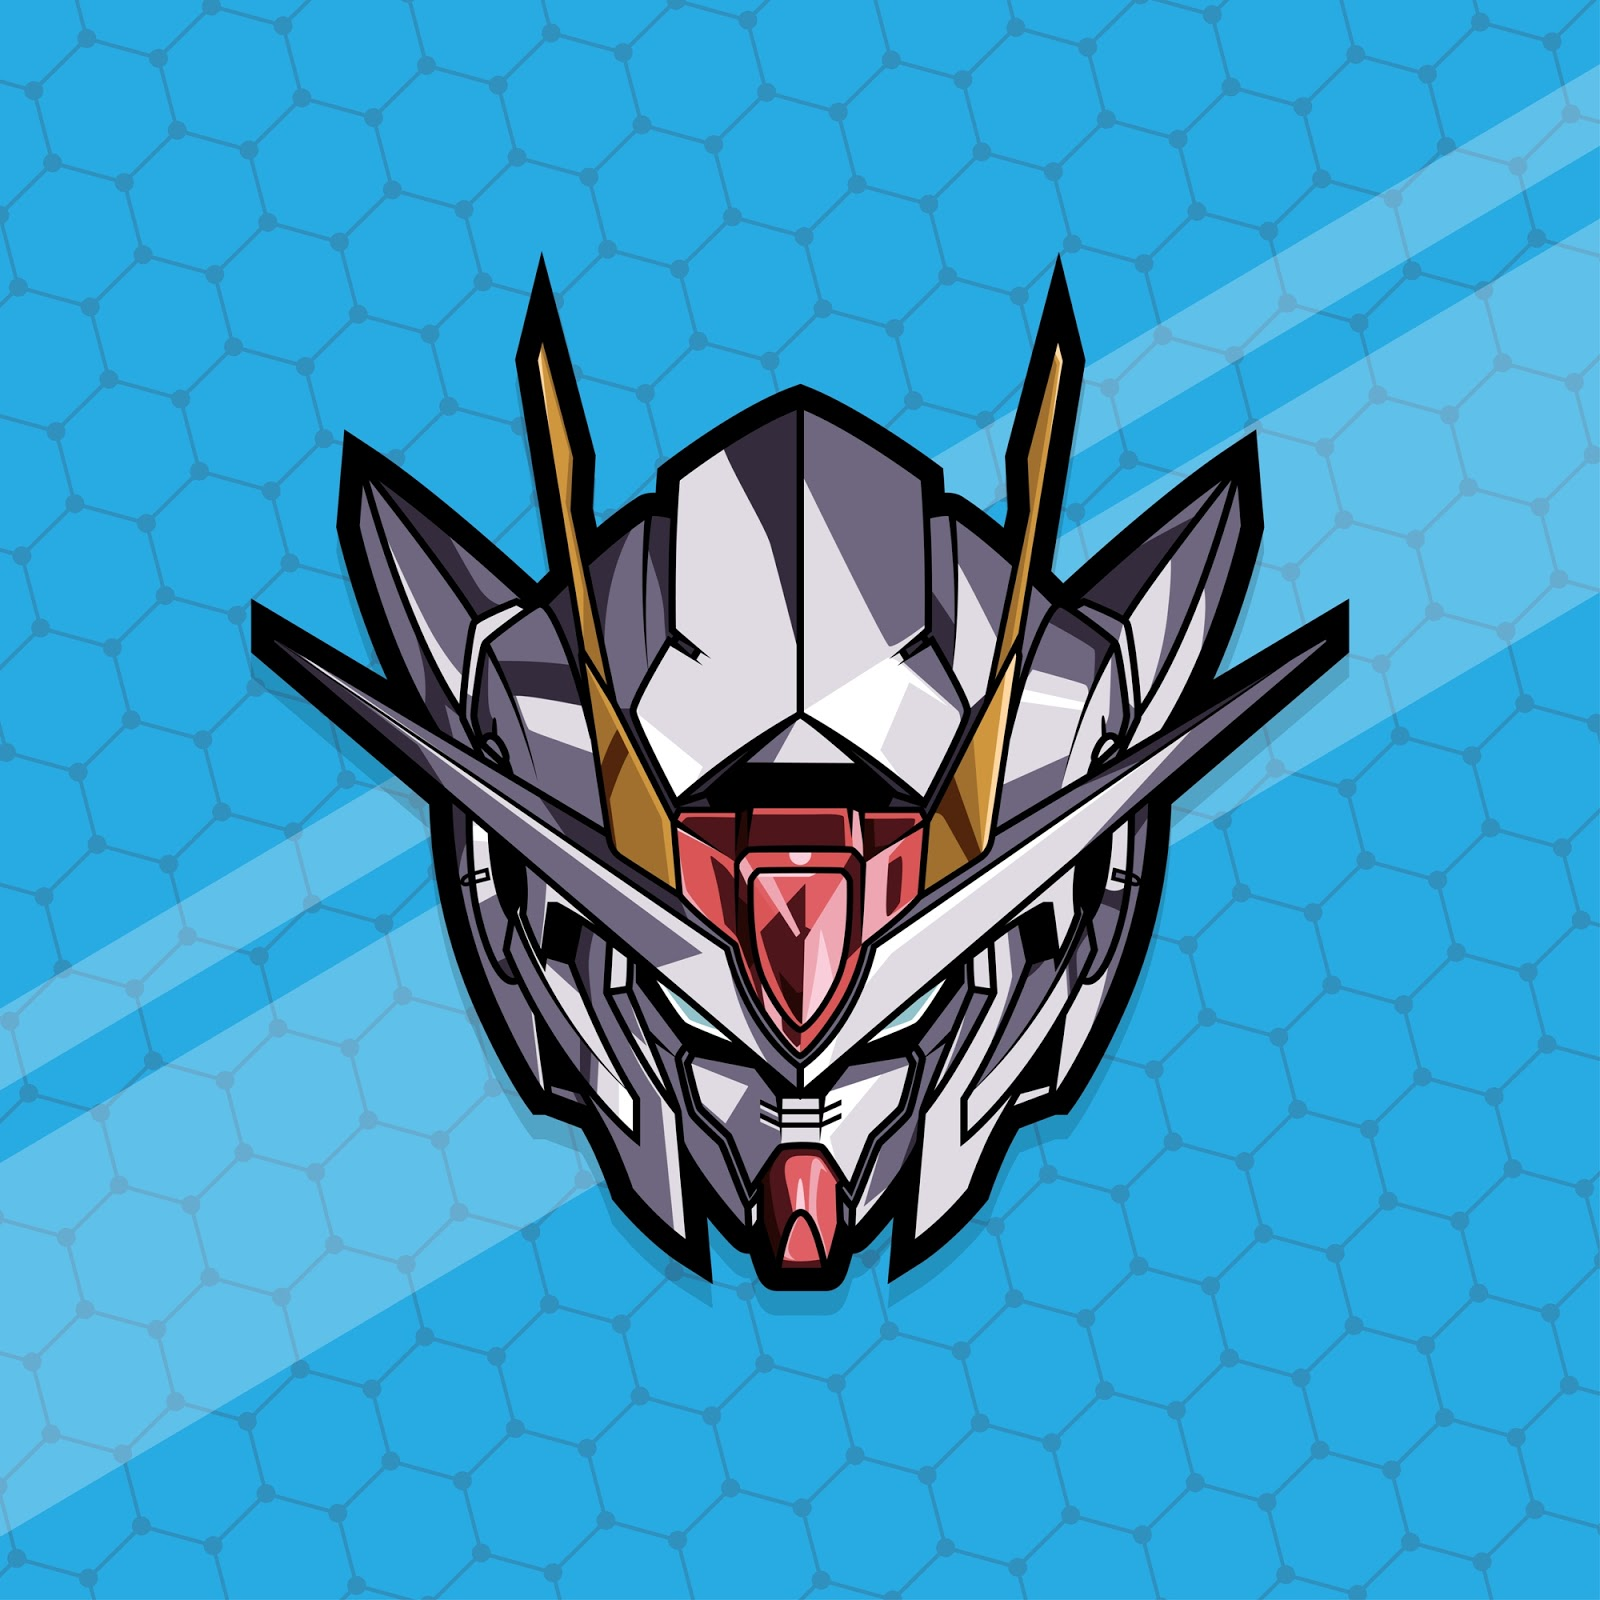 Esport Gamer Logo Gundam Free Download Vector CDR, AI, EPS and PNG Formats